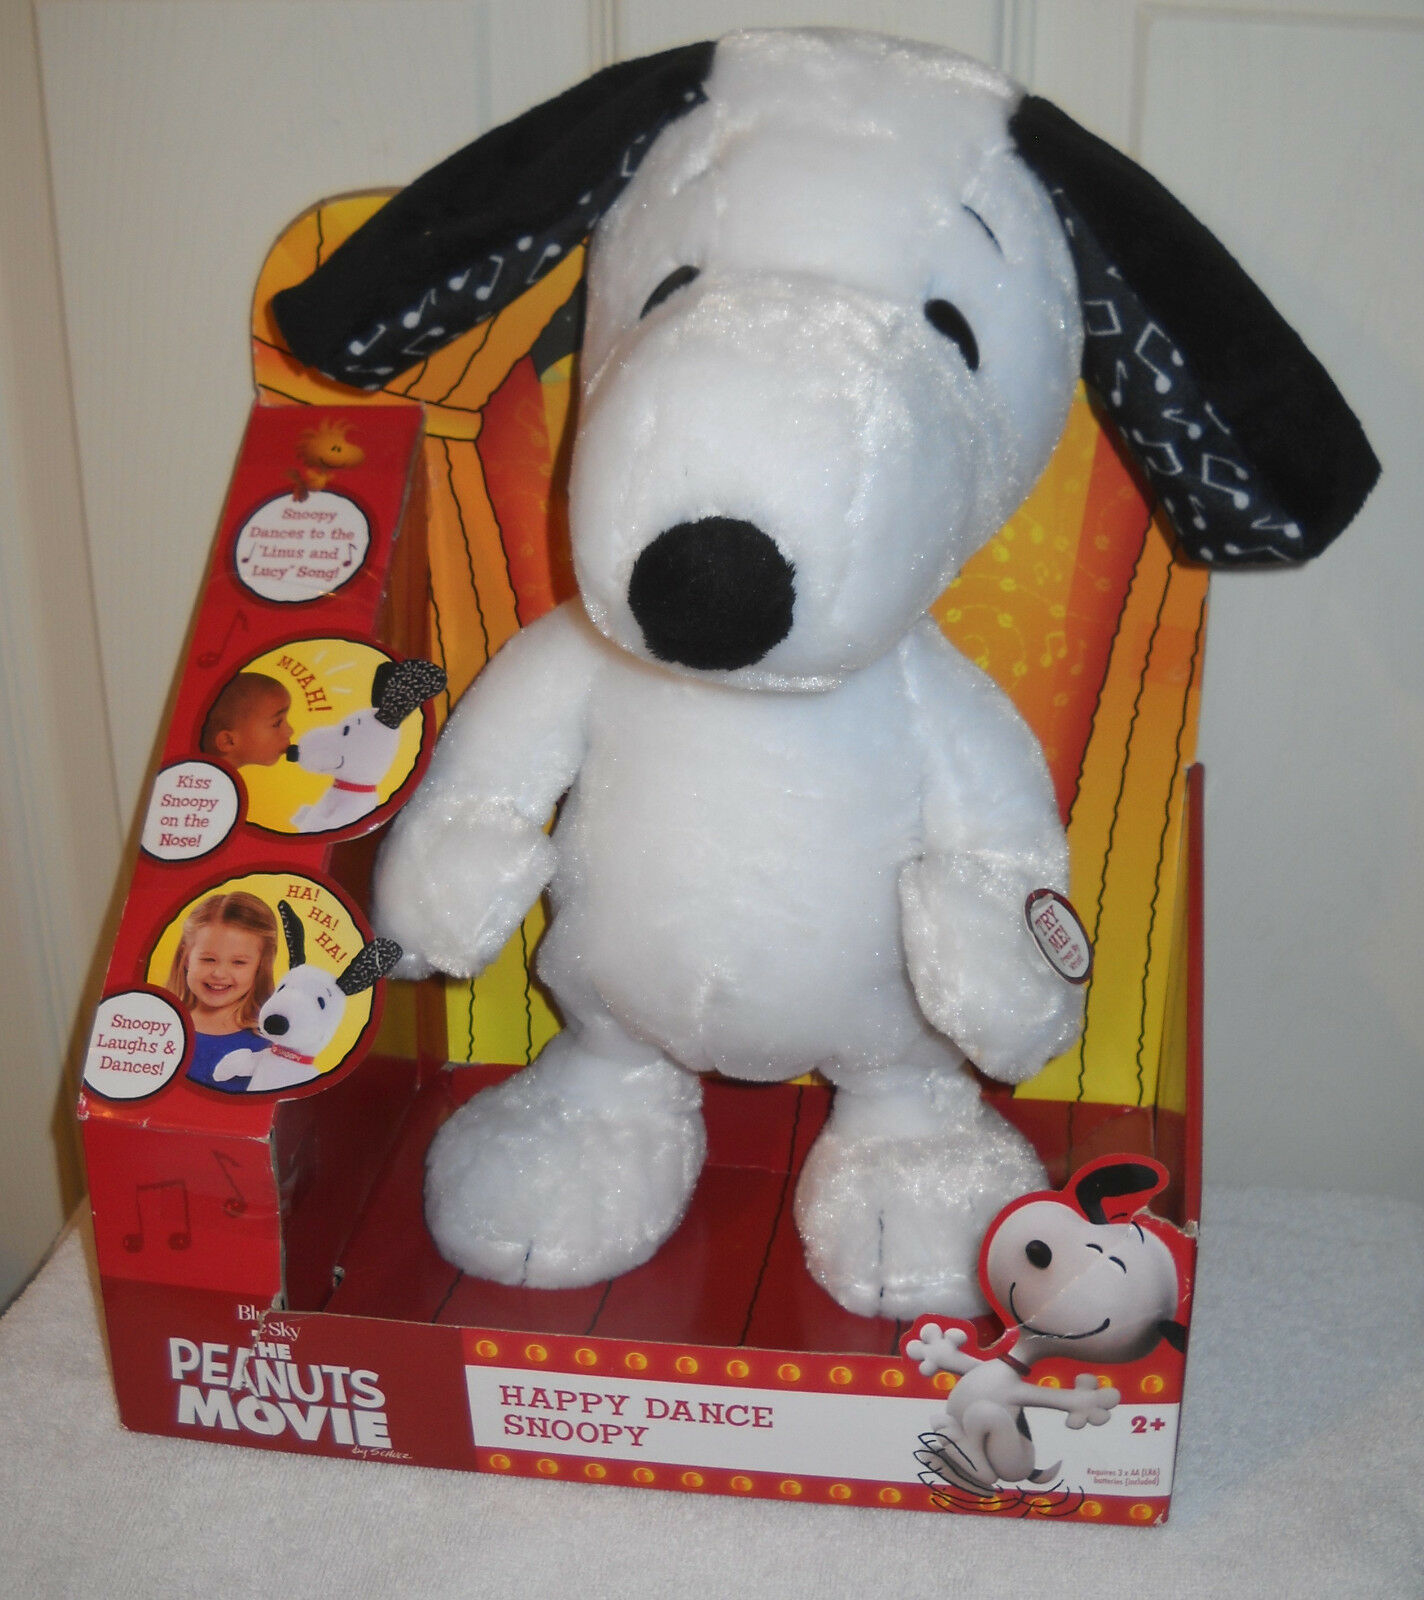 NRFB Just Play the Peanuts Movie Happy Dance Snoopy